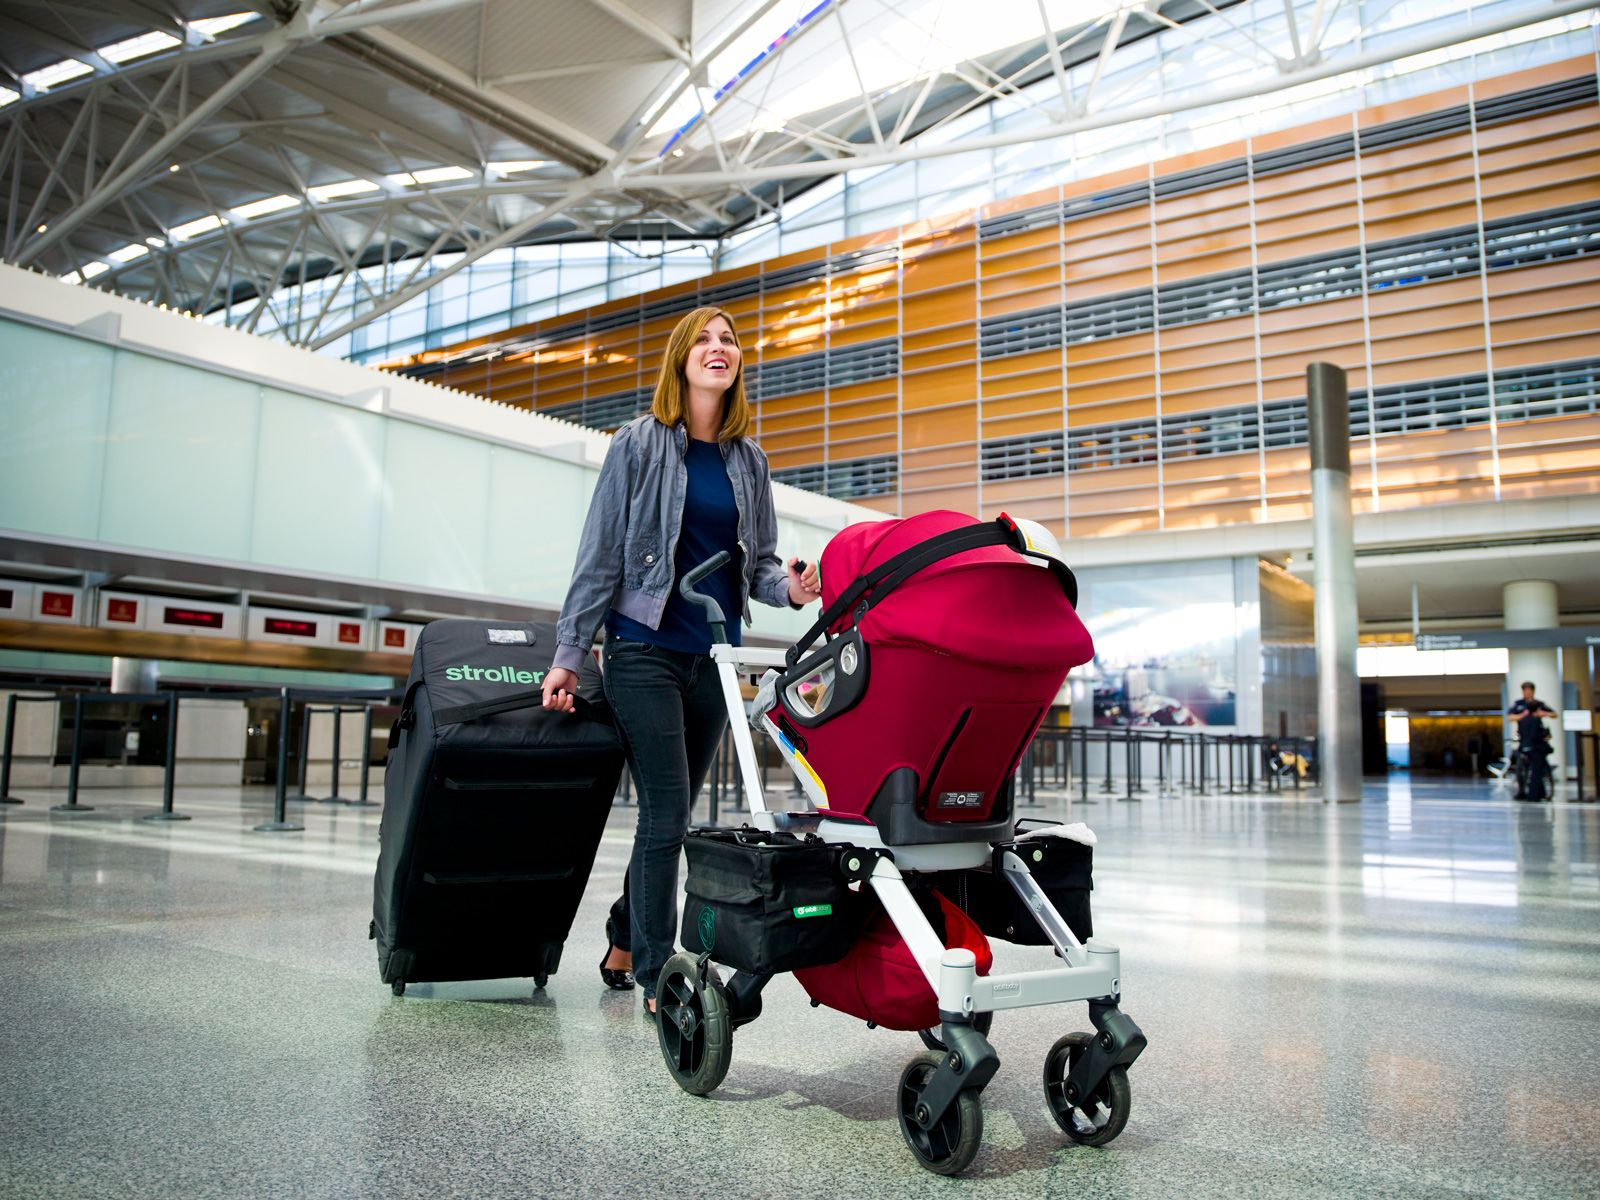 Stroller Travel System G2 (SFO Airport), 2010 (With images